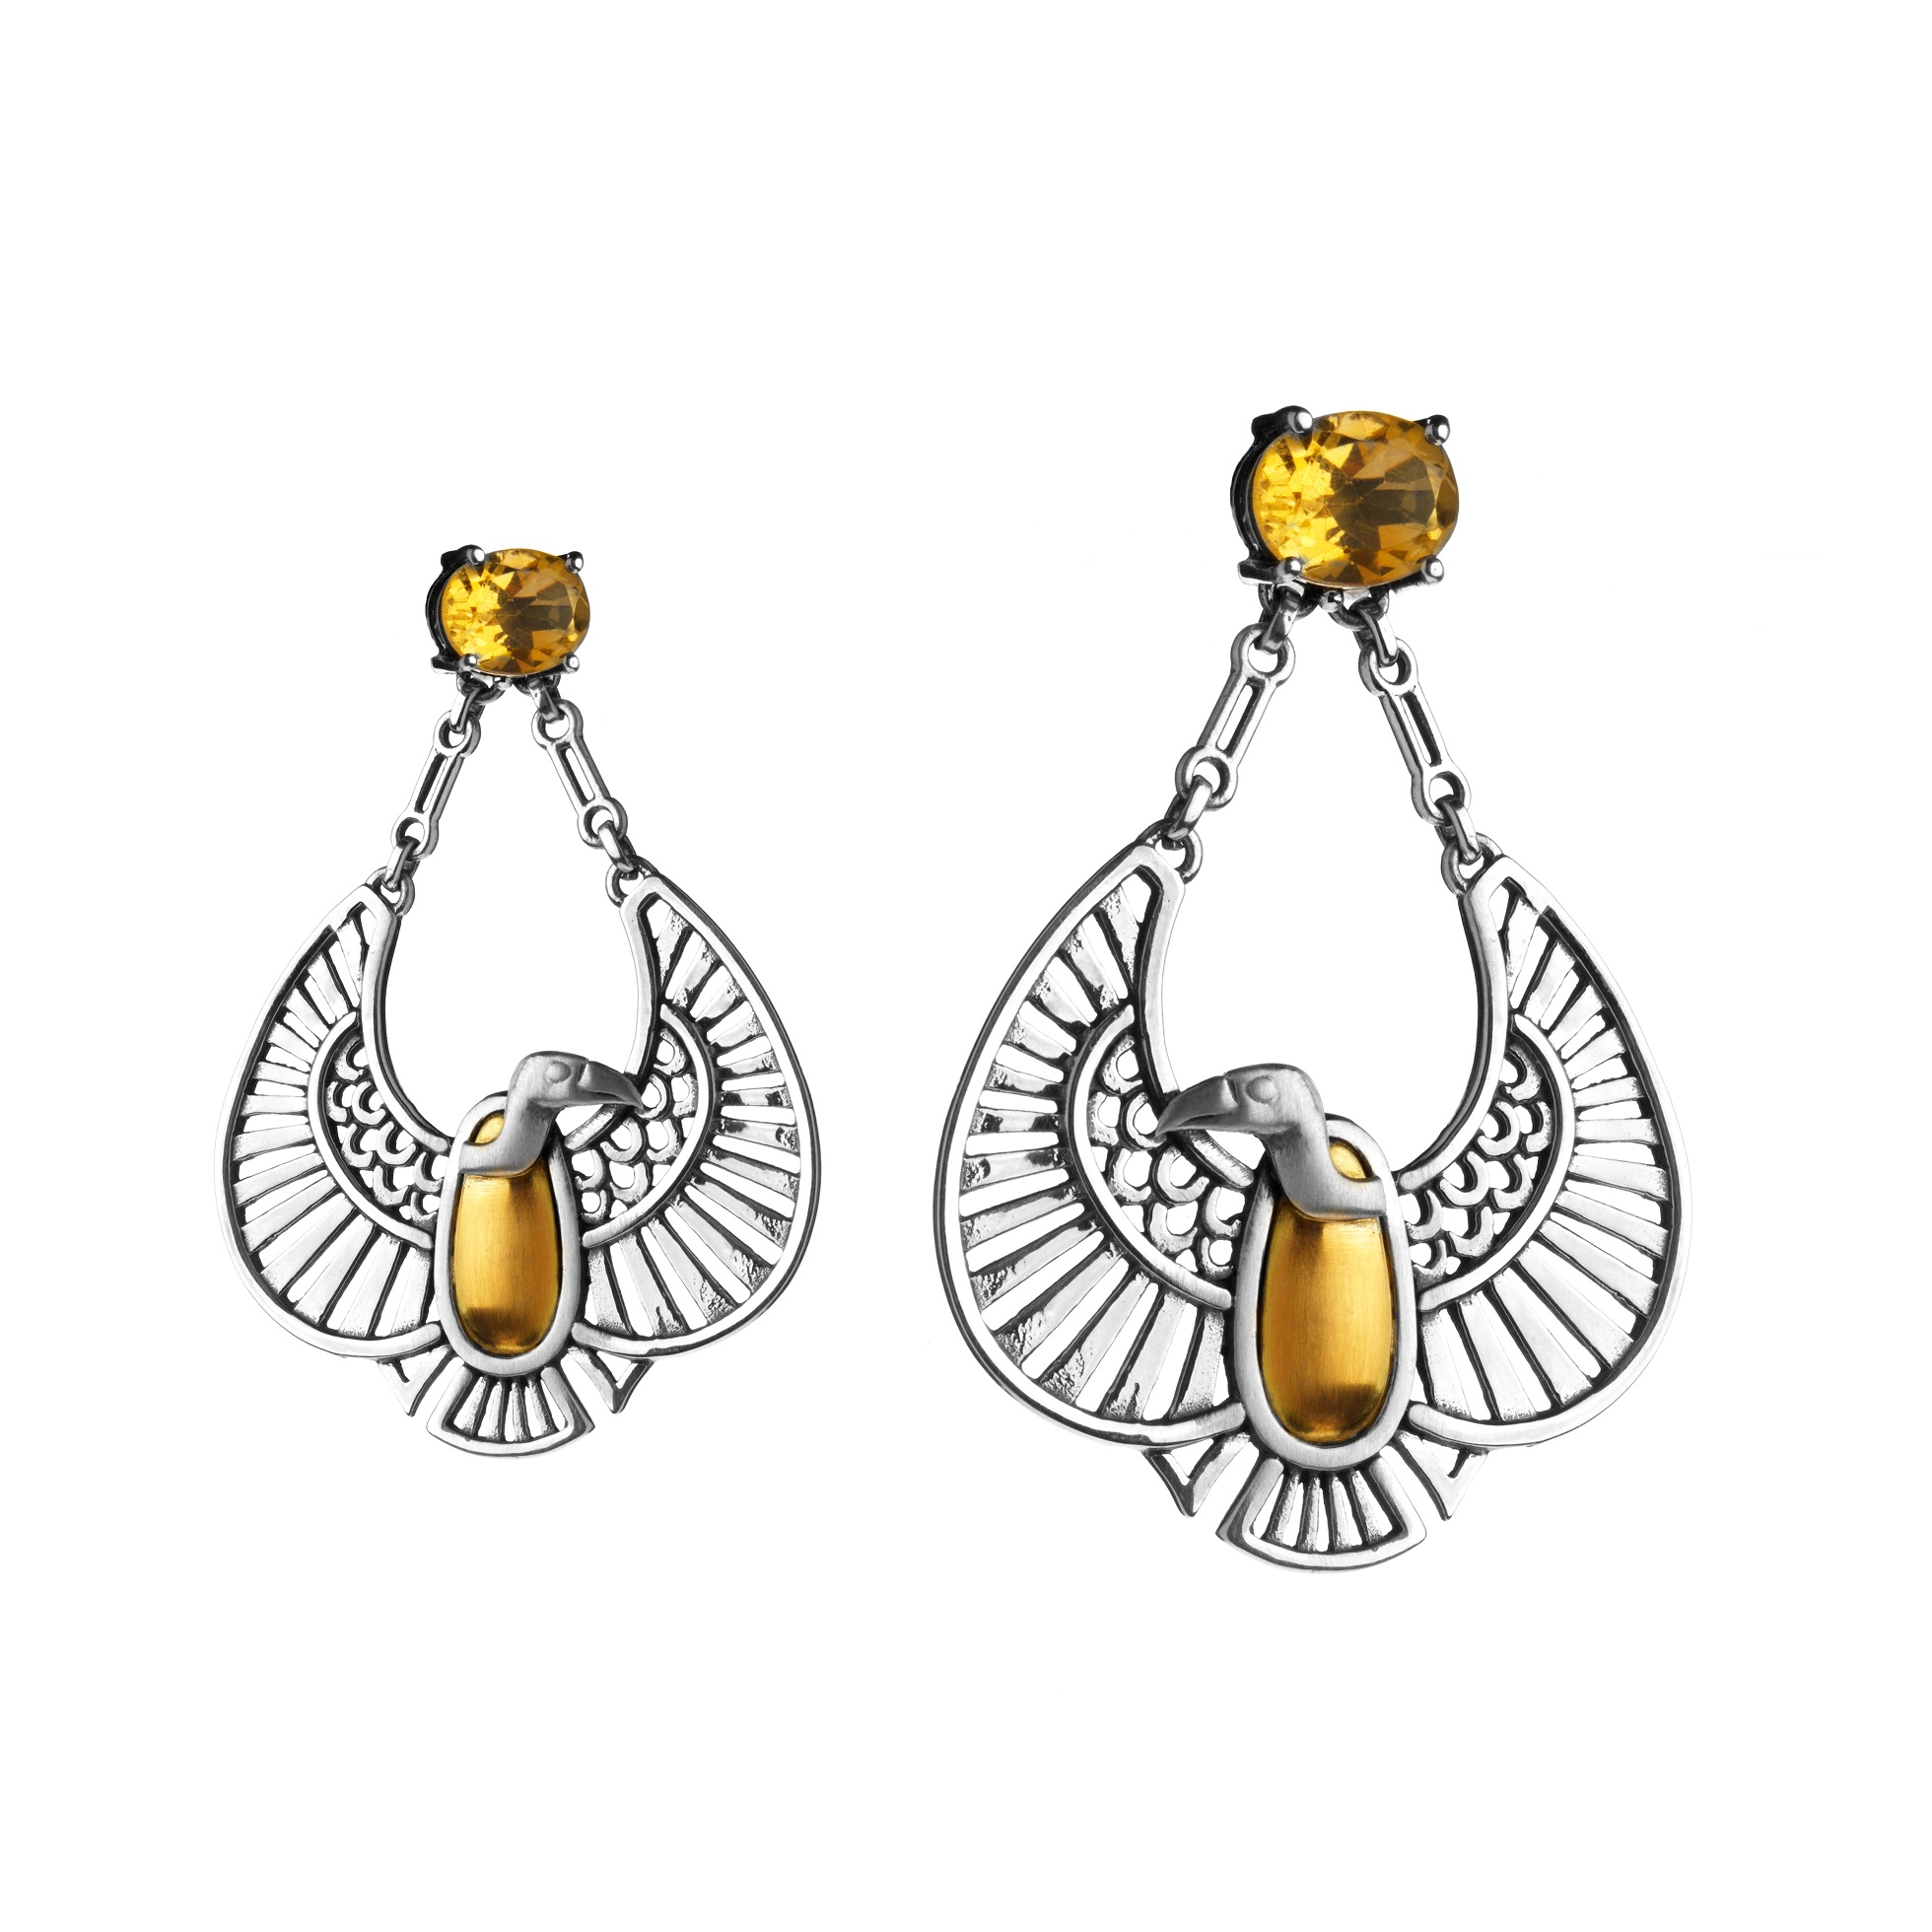 Nekhbet Vulture Earrings